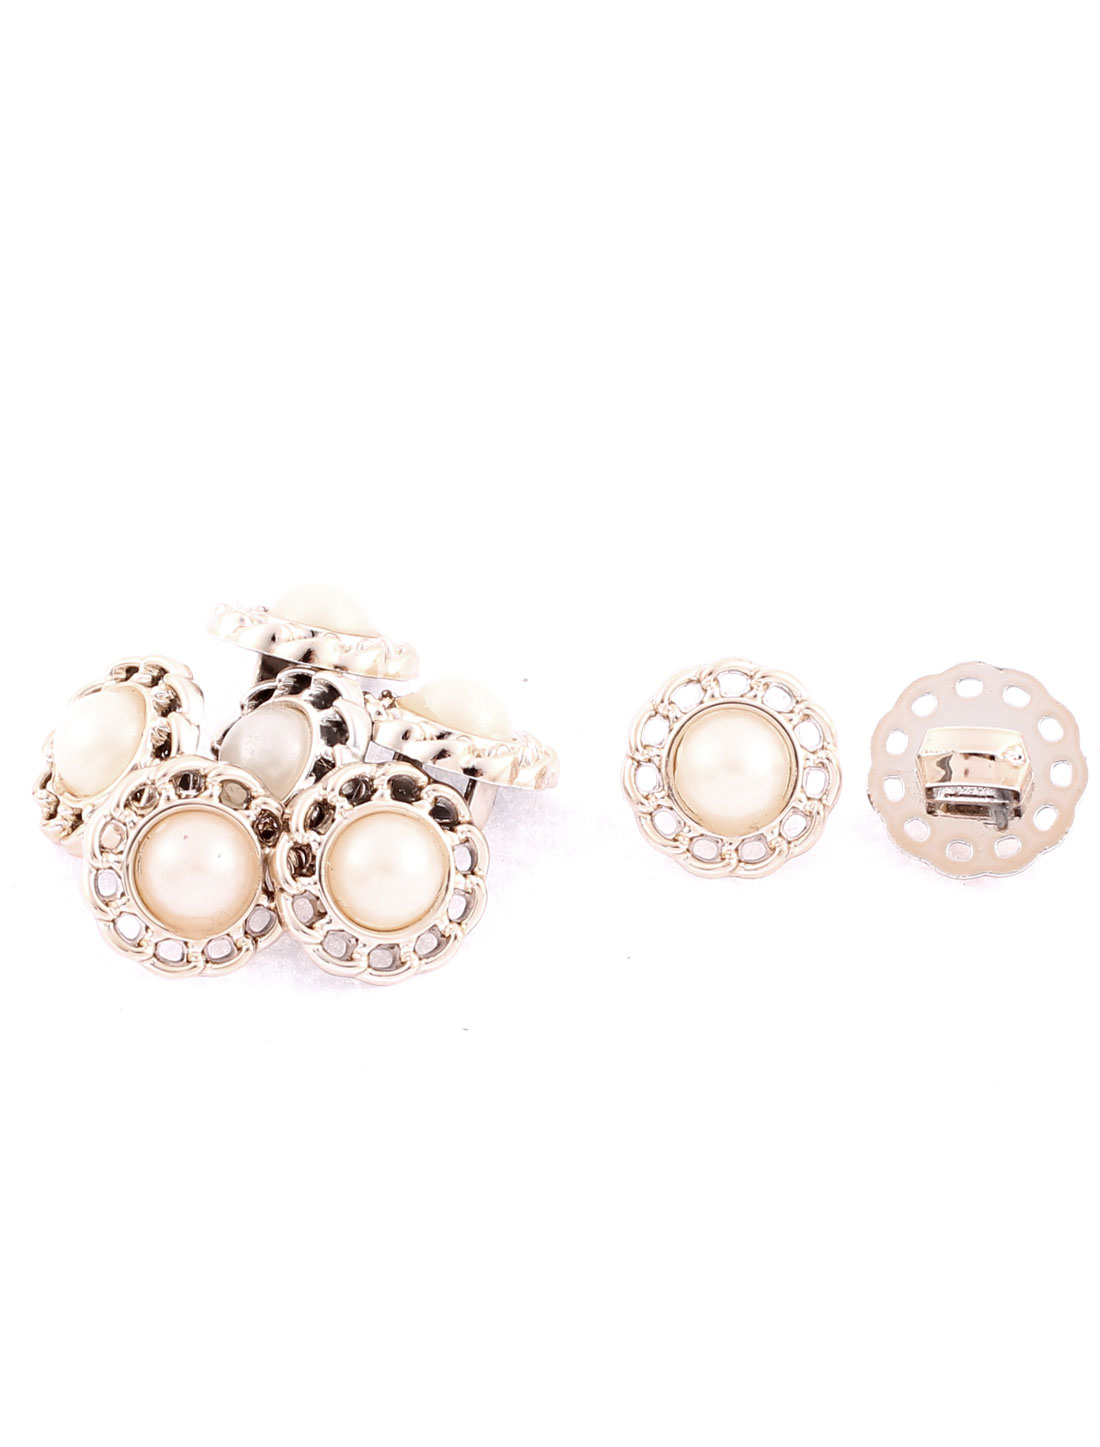 Pearl Inlaid Openwork Design Sewing Coat Clothes Buttons 8Pcs